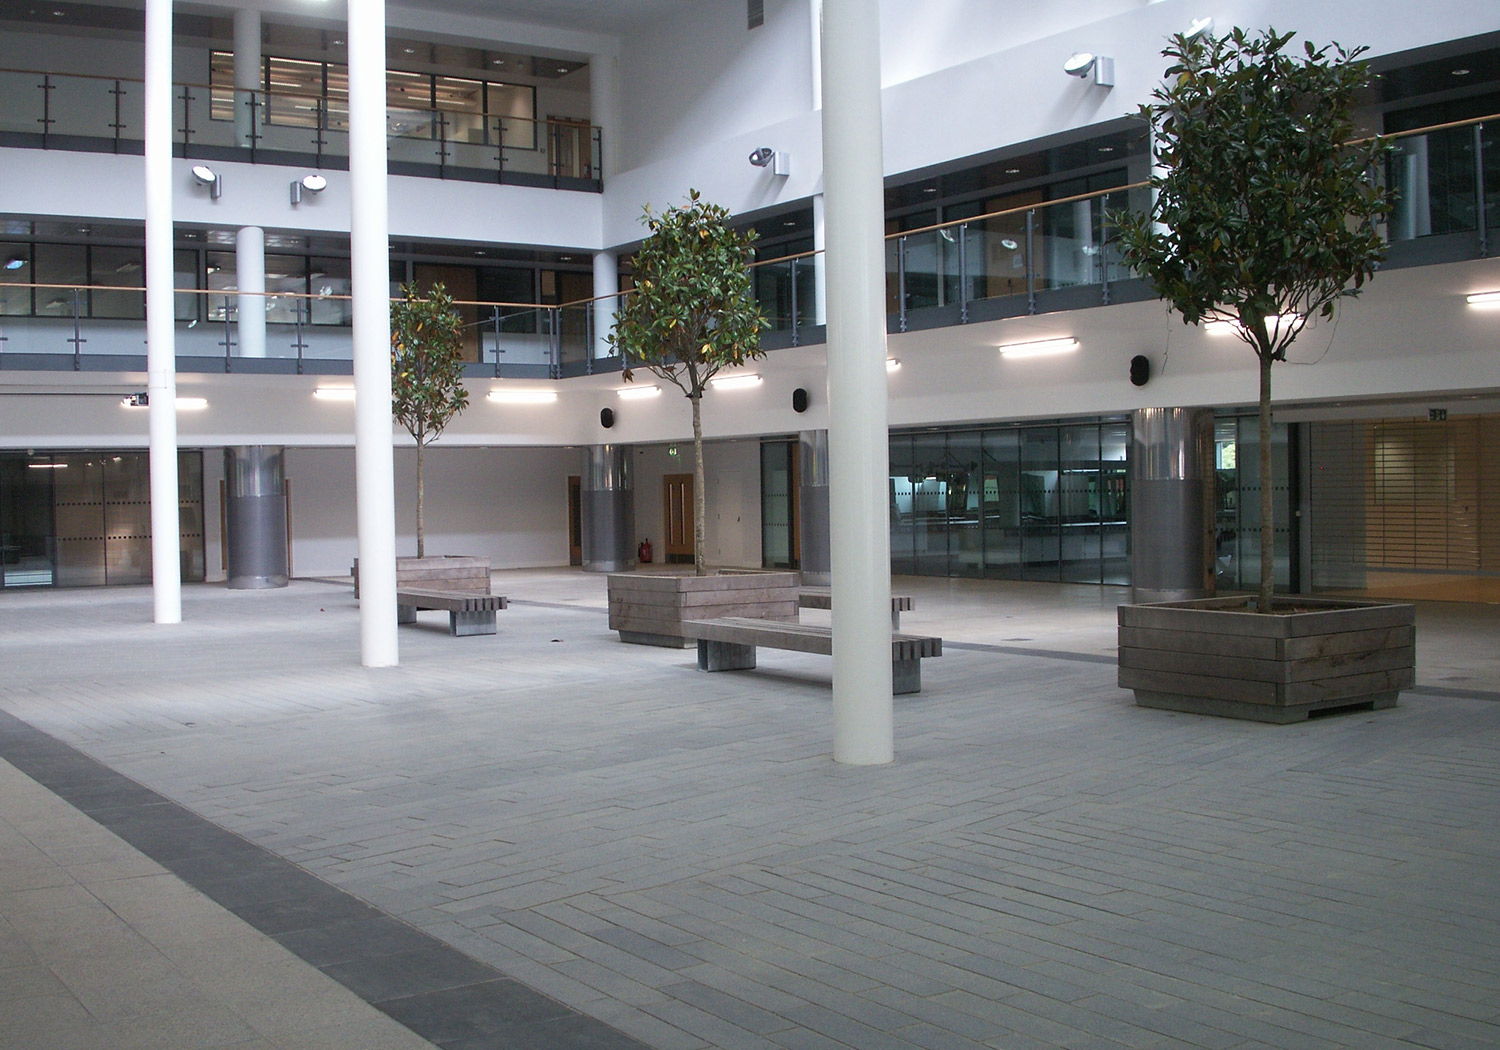 Projects-Education-EastSurreyCollege-Courtyard-1500x1050